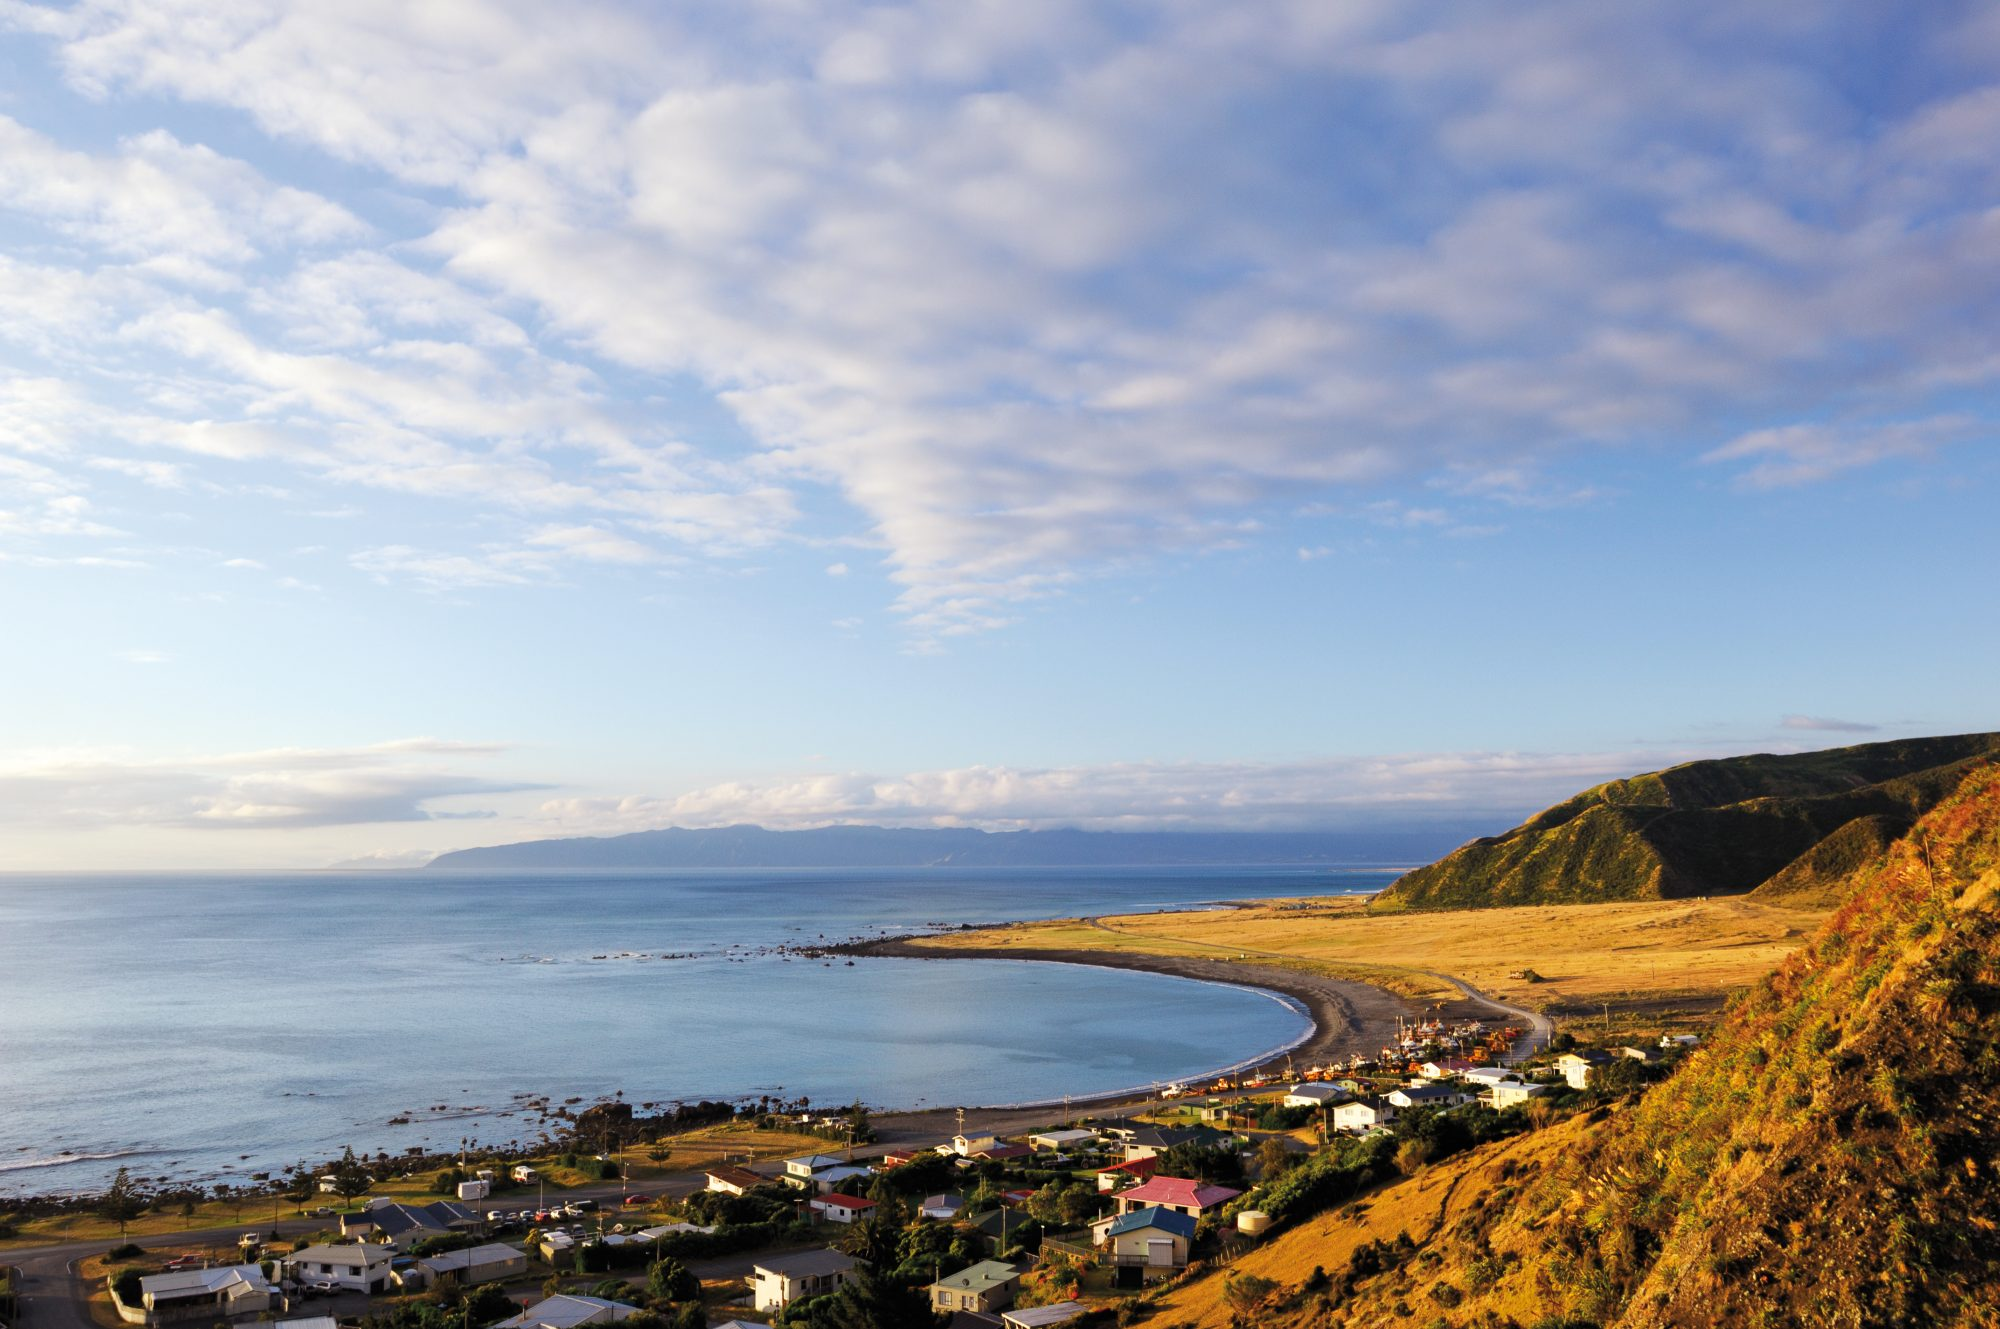 Ngawi is nestled on the foothills of Aorangi Range, where low rainfall and clear skies are compared with Central Otago.